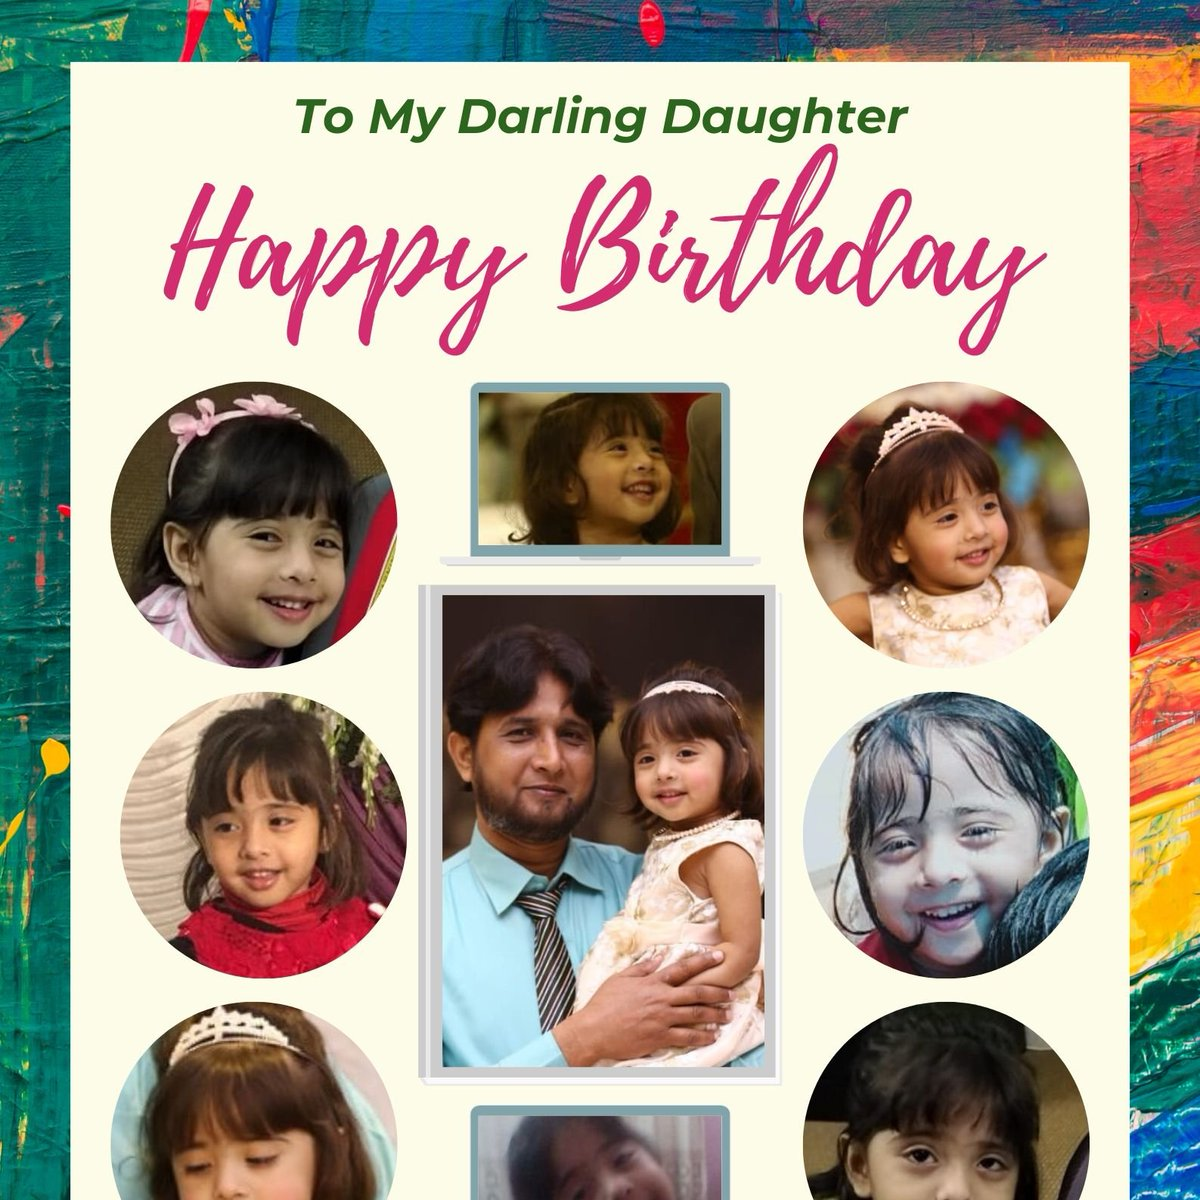 Alhamdolilah My Beloved Daughter Turned to 04 Year Today 🎂Happy Birthday🎂 To My Darling ♥️ Aaleen Fatima ♥️ May you forever sparkle & shine like star that you are You are always loved sweetheart I love you my angel  #HBDAaleenFatima #Islamabad #Pakistan #11thHour #Edhi #Qatar https://t.co/p4fBixddEv